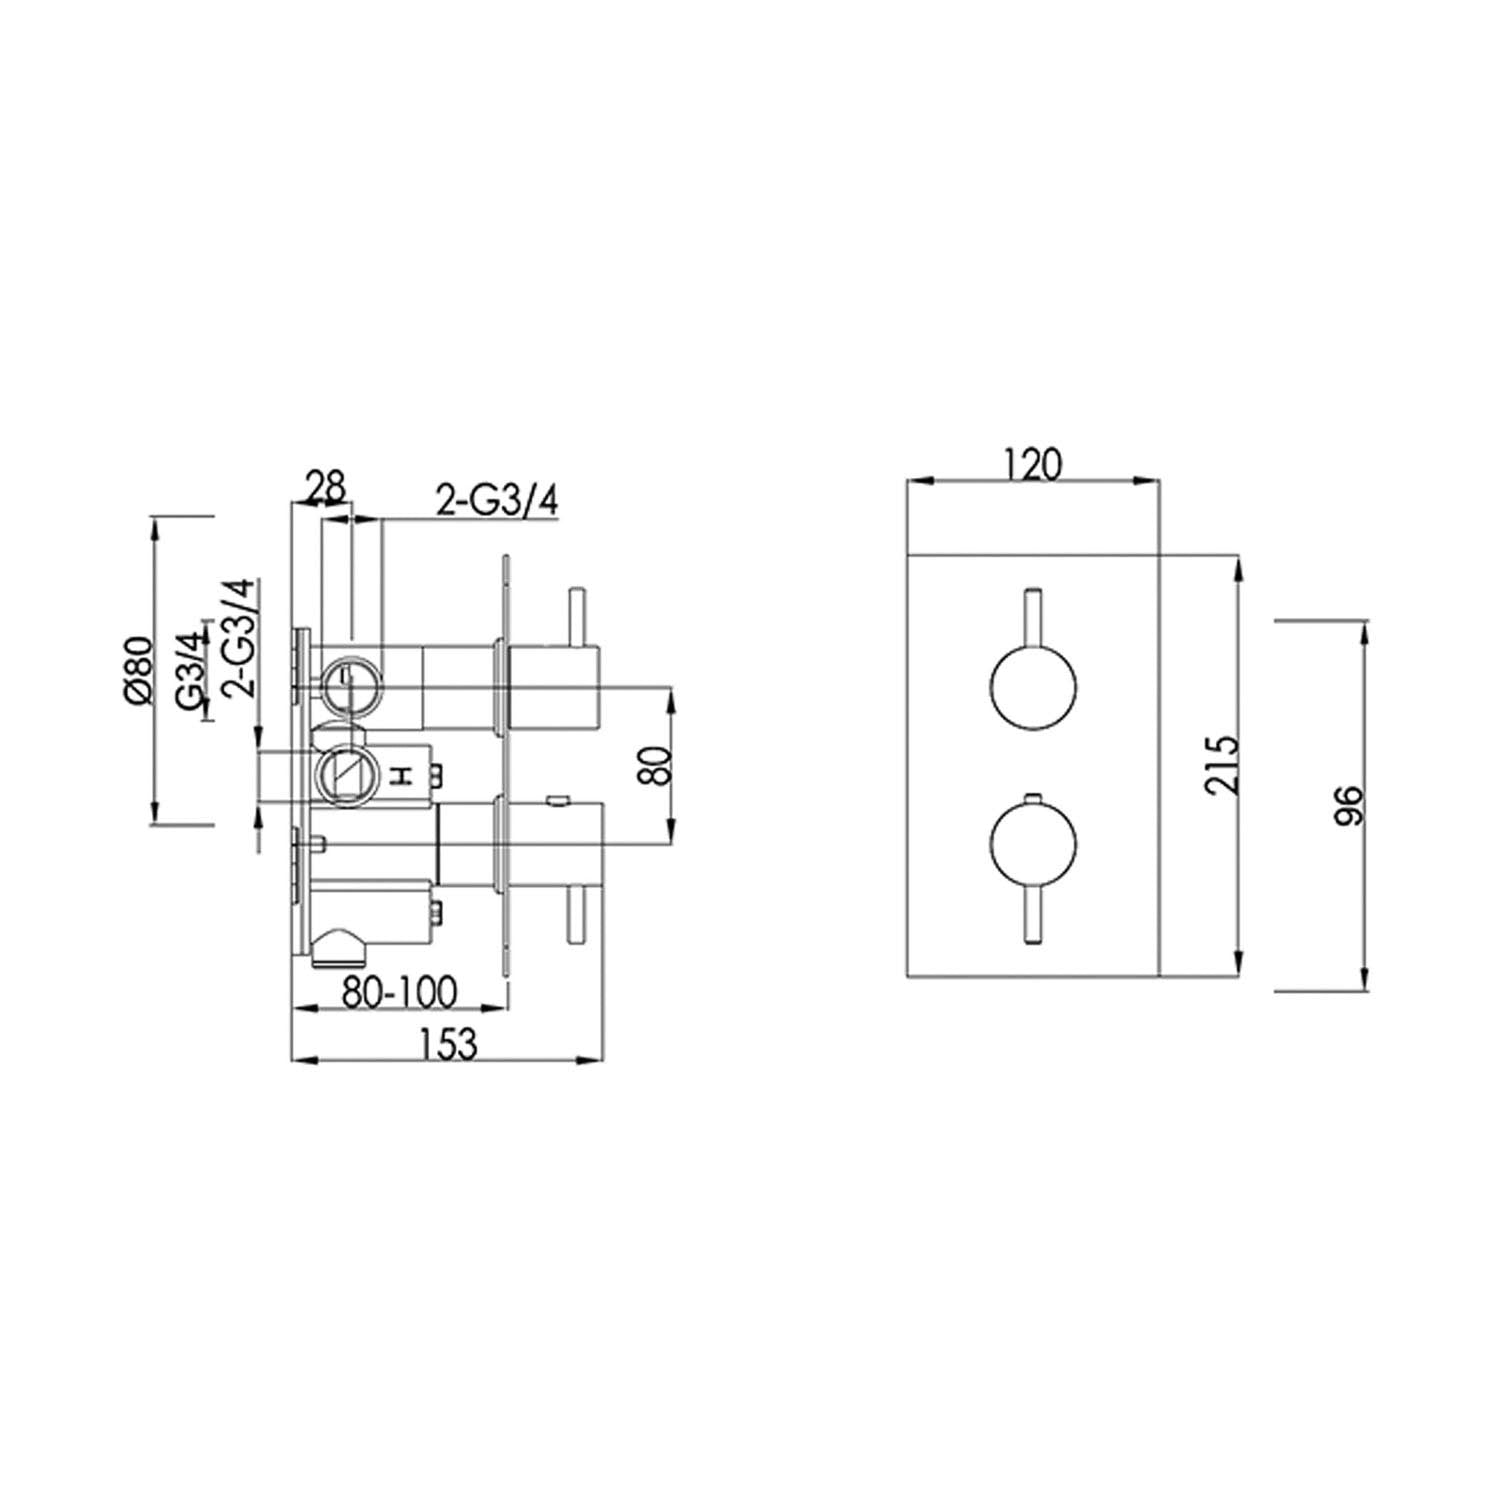 Dual outlet Libero Concealed Shower Valve with a satin steel finish dimensional drawing